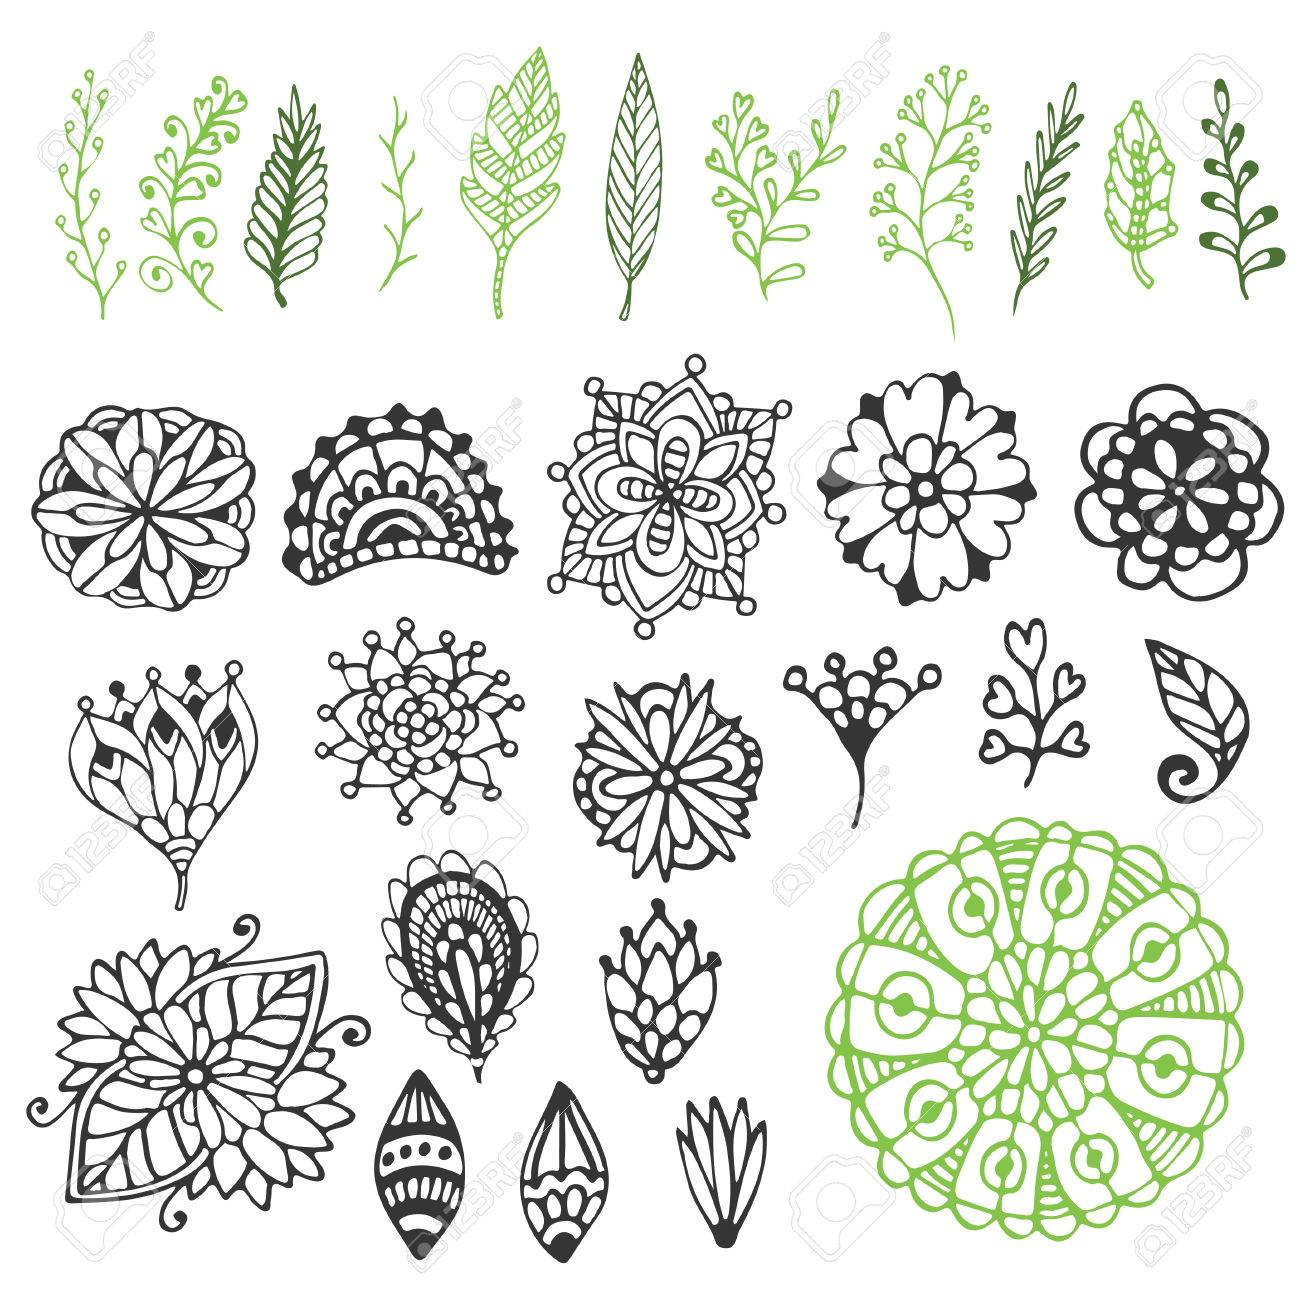 Zentangle Nature Collection Hand Drawn Vector Illustration With